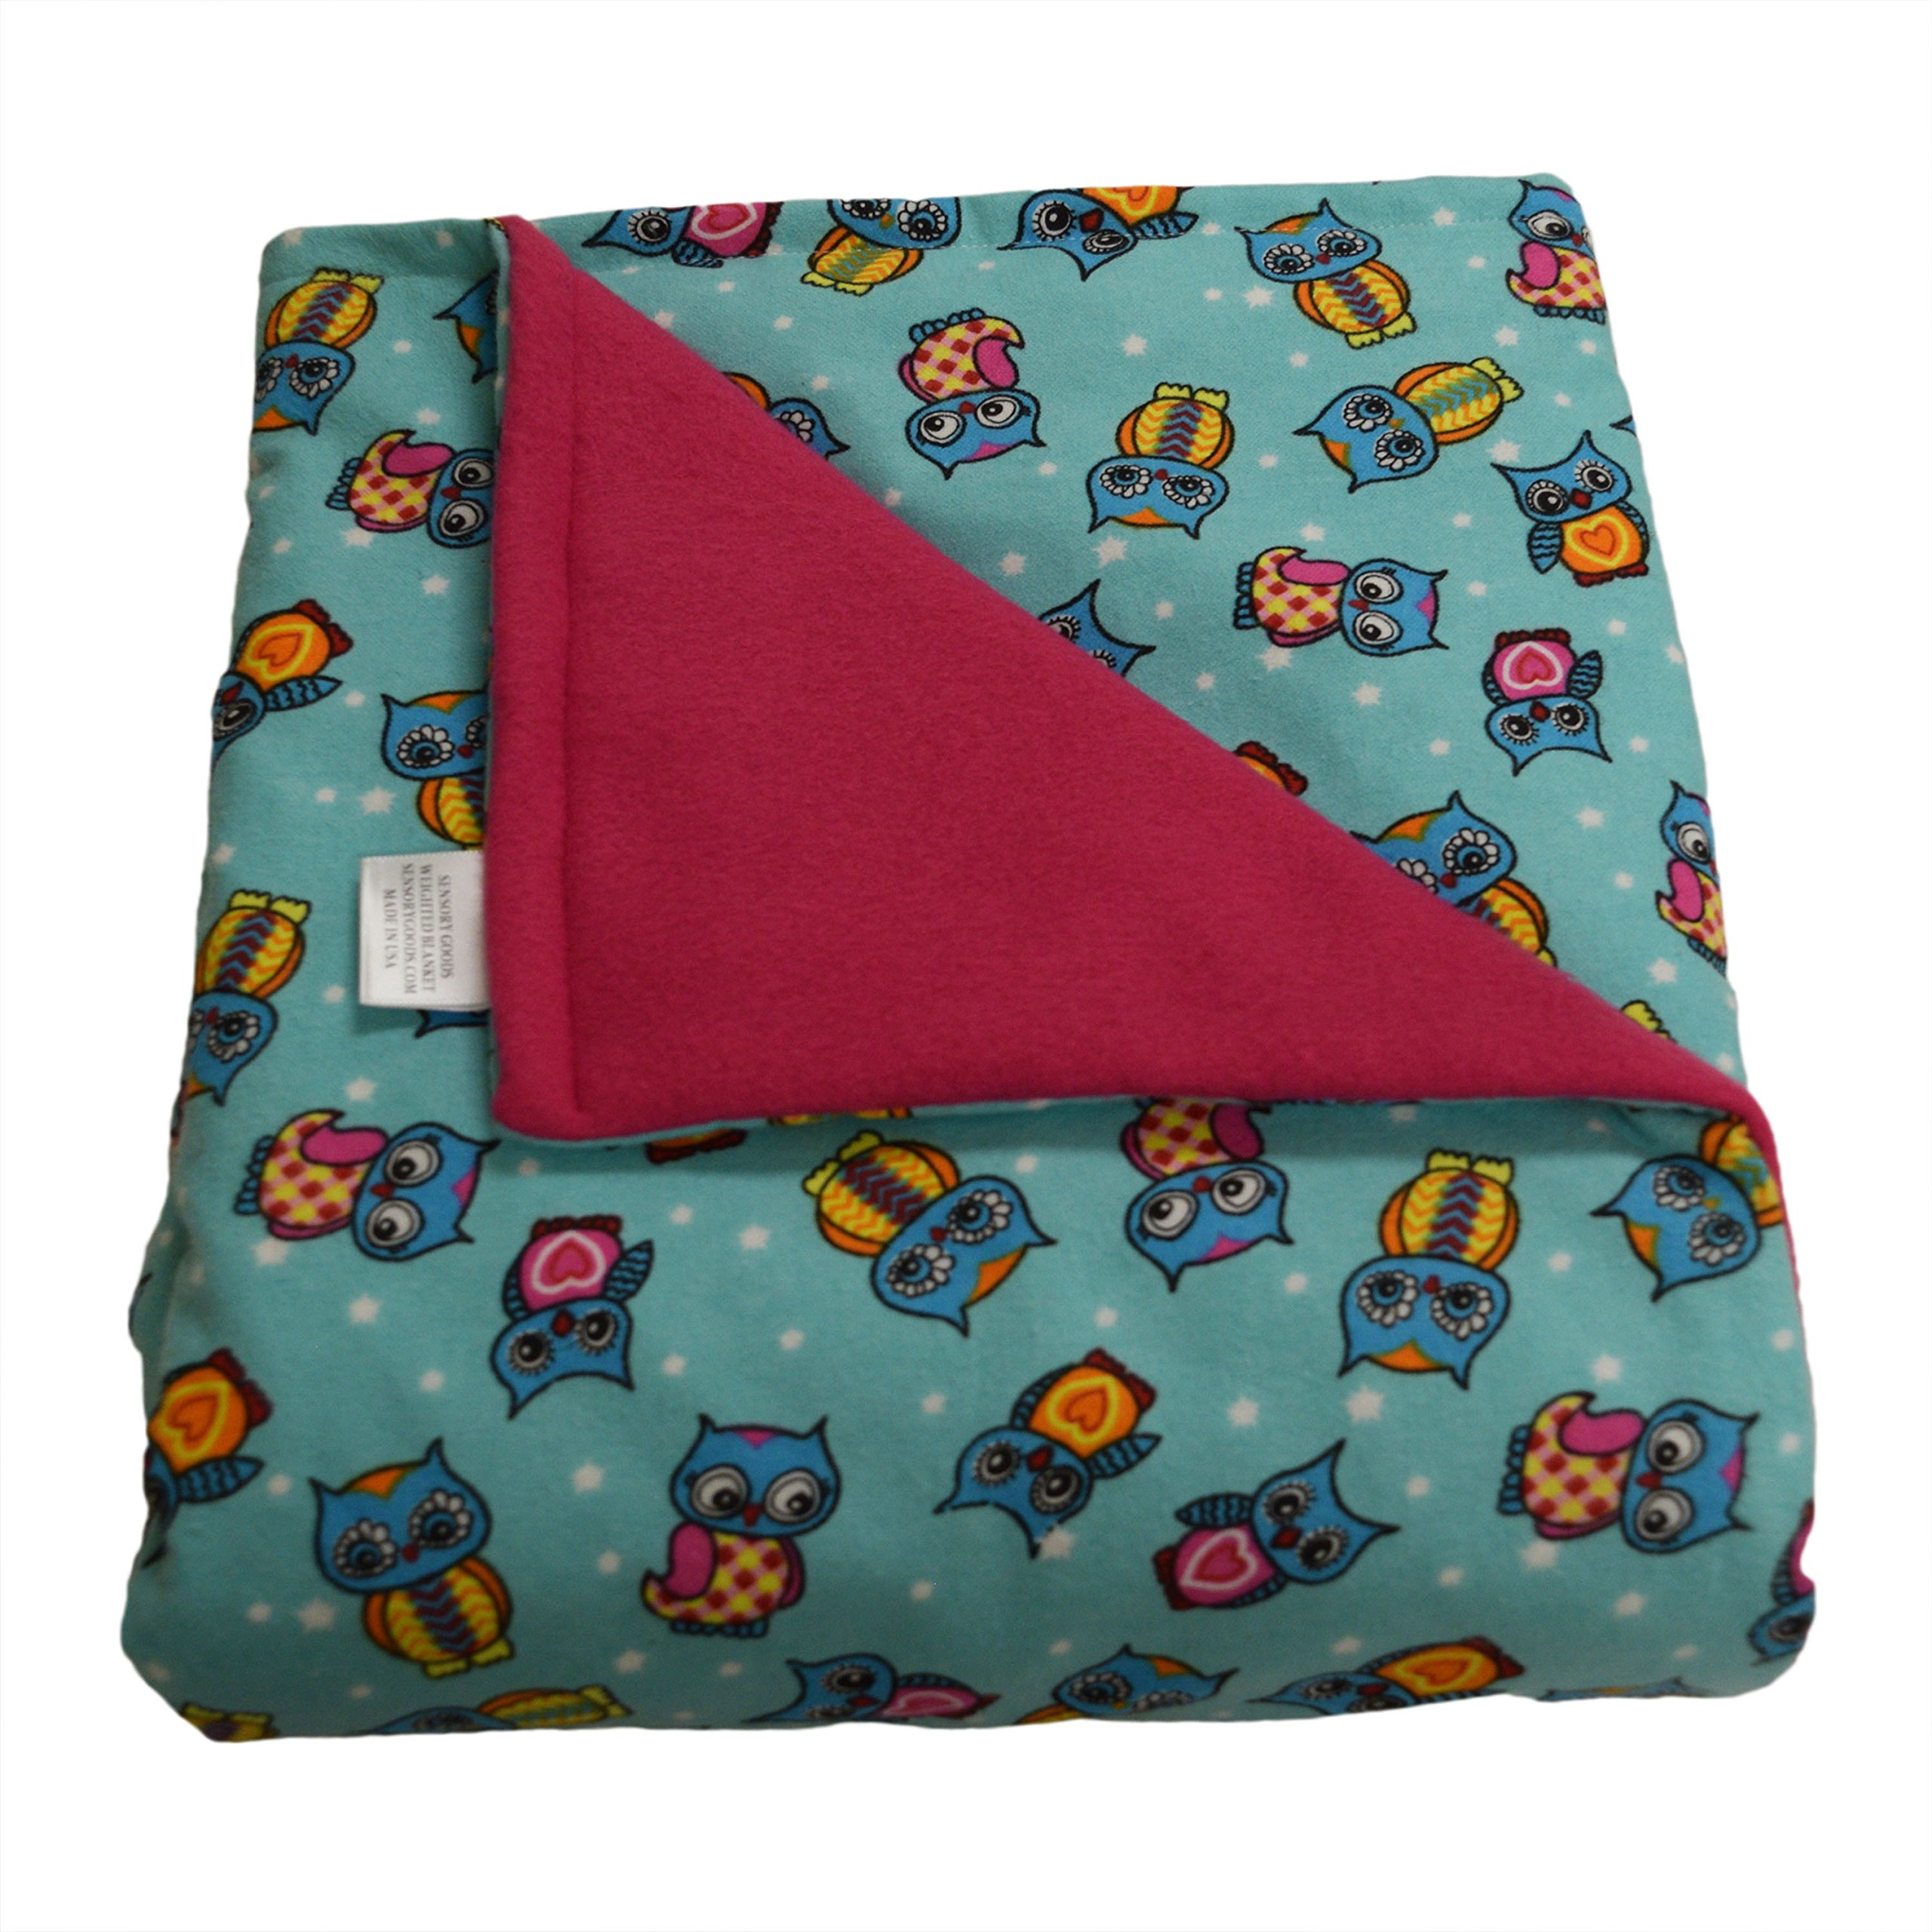 SENSORY GOODS Child Small Weighted Blanket Made in America - 4lb Low Pressure - Owls Pattern/Hot Pink - Fleece/Flannel (48'' x 30'') Provides Comfort and Relaxation. by SENSORY GOODS